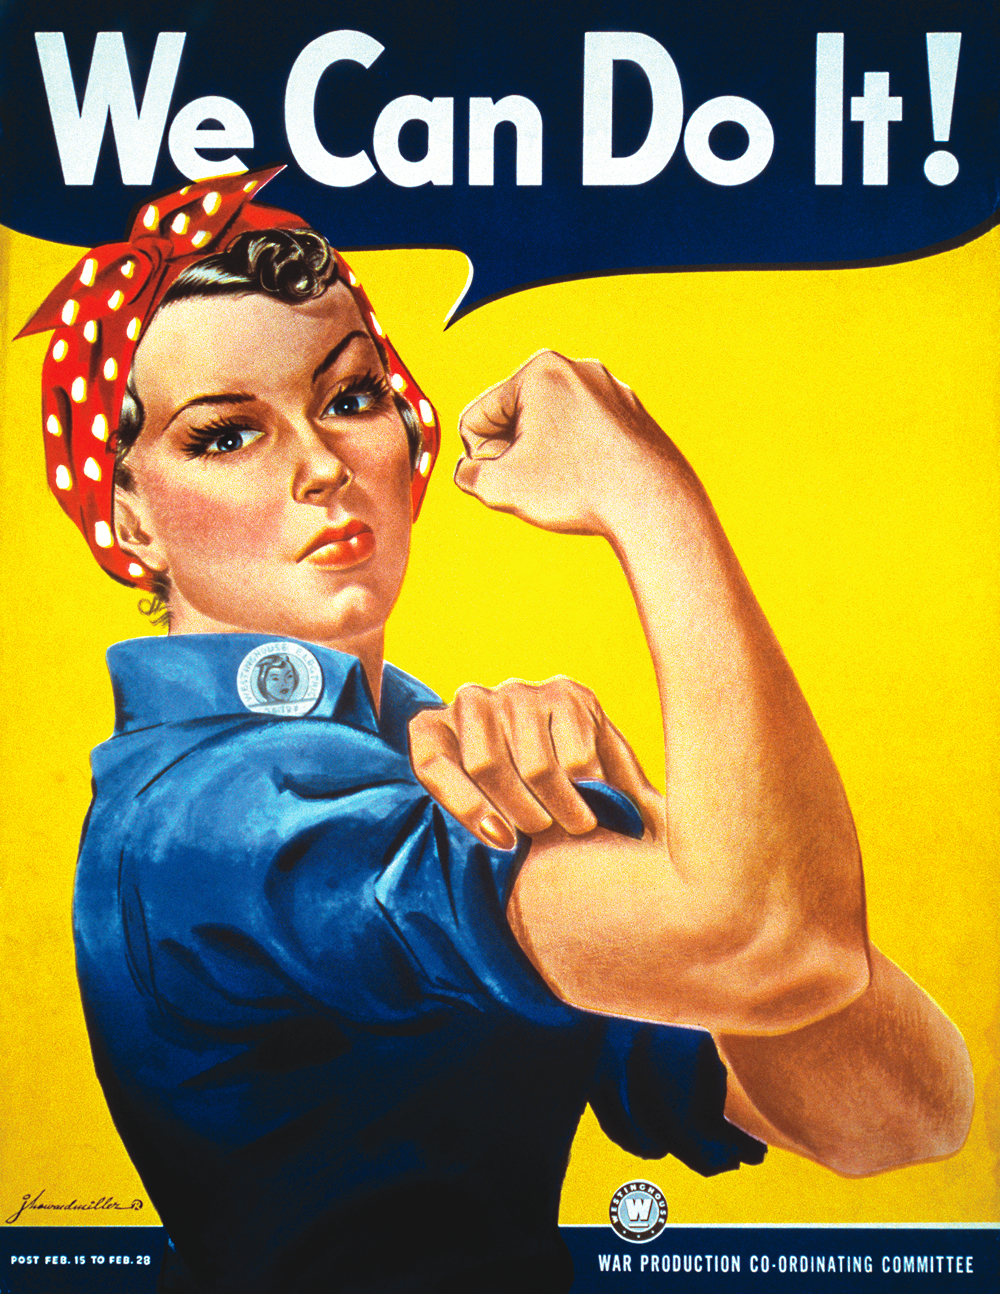 Archivo:We Can Do It!.jpg - Wikipedia, la enciclopedia libre